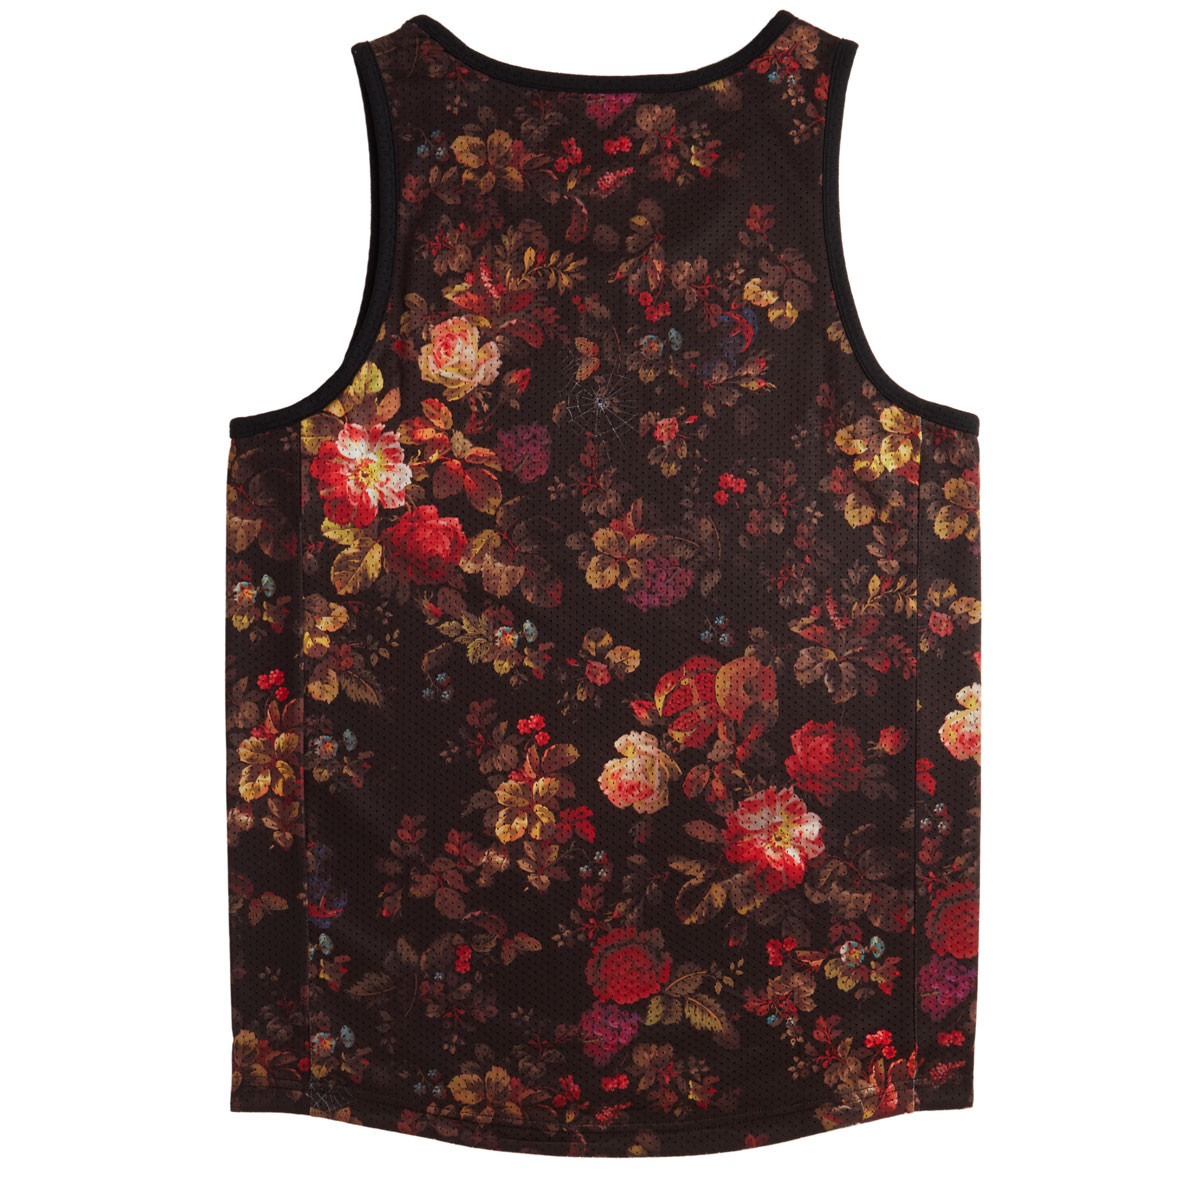 2d404018de42 Nike SB Dry-Fit Mesh Floral Tank Top - Black White